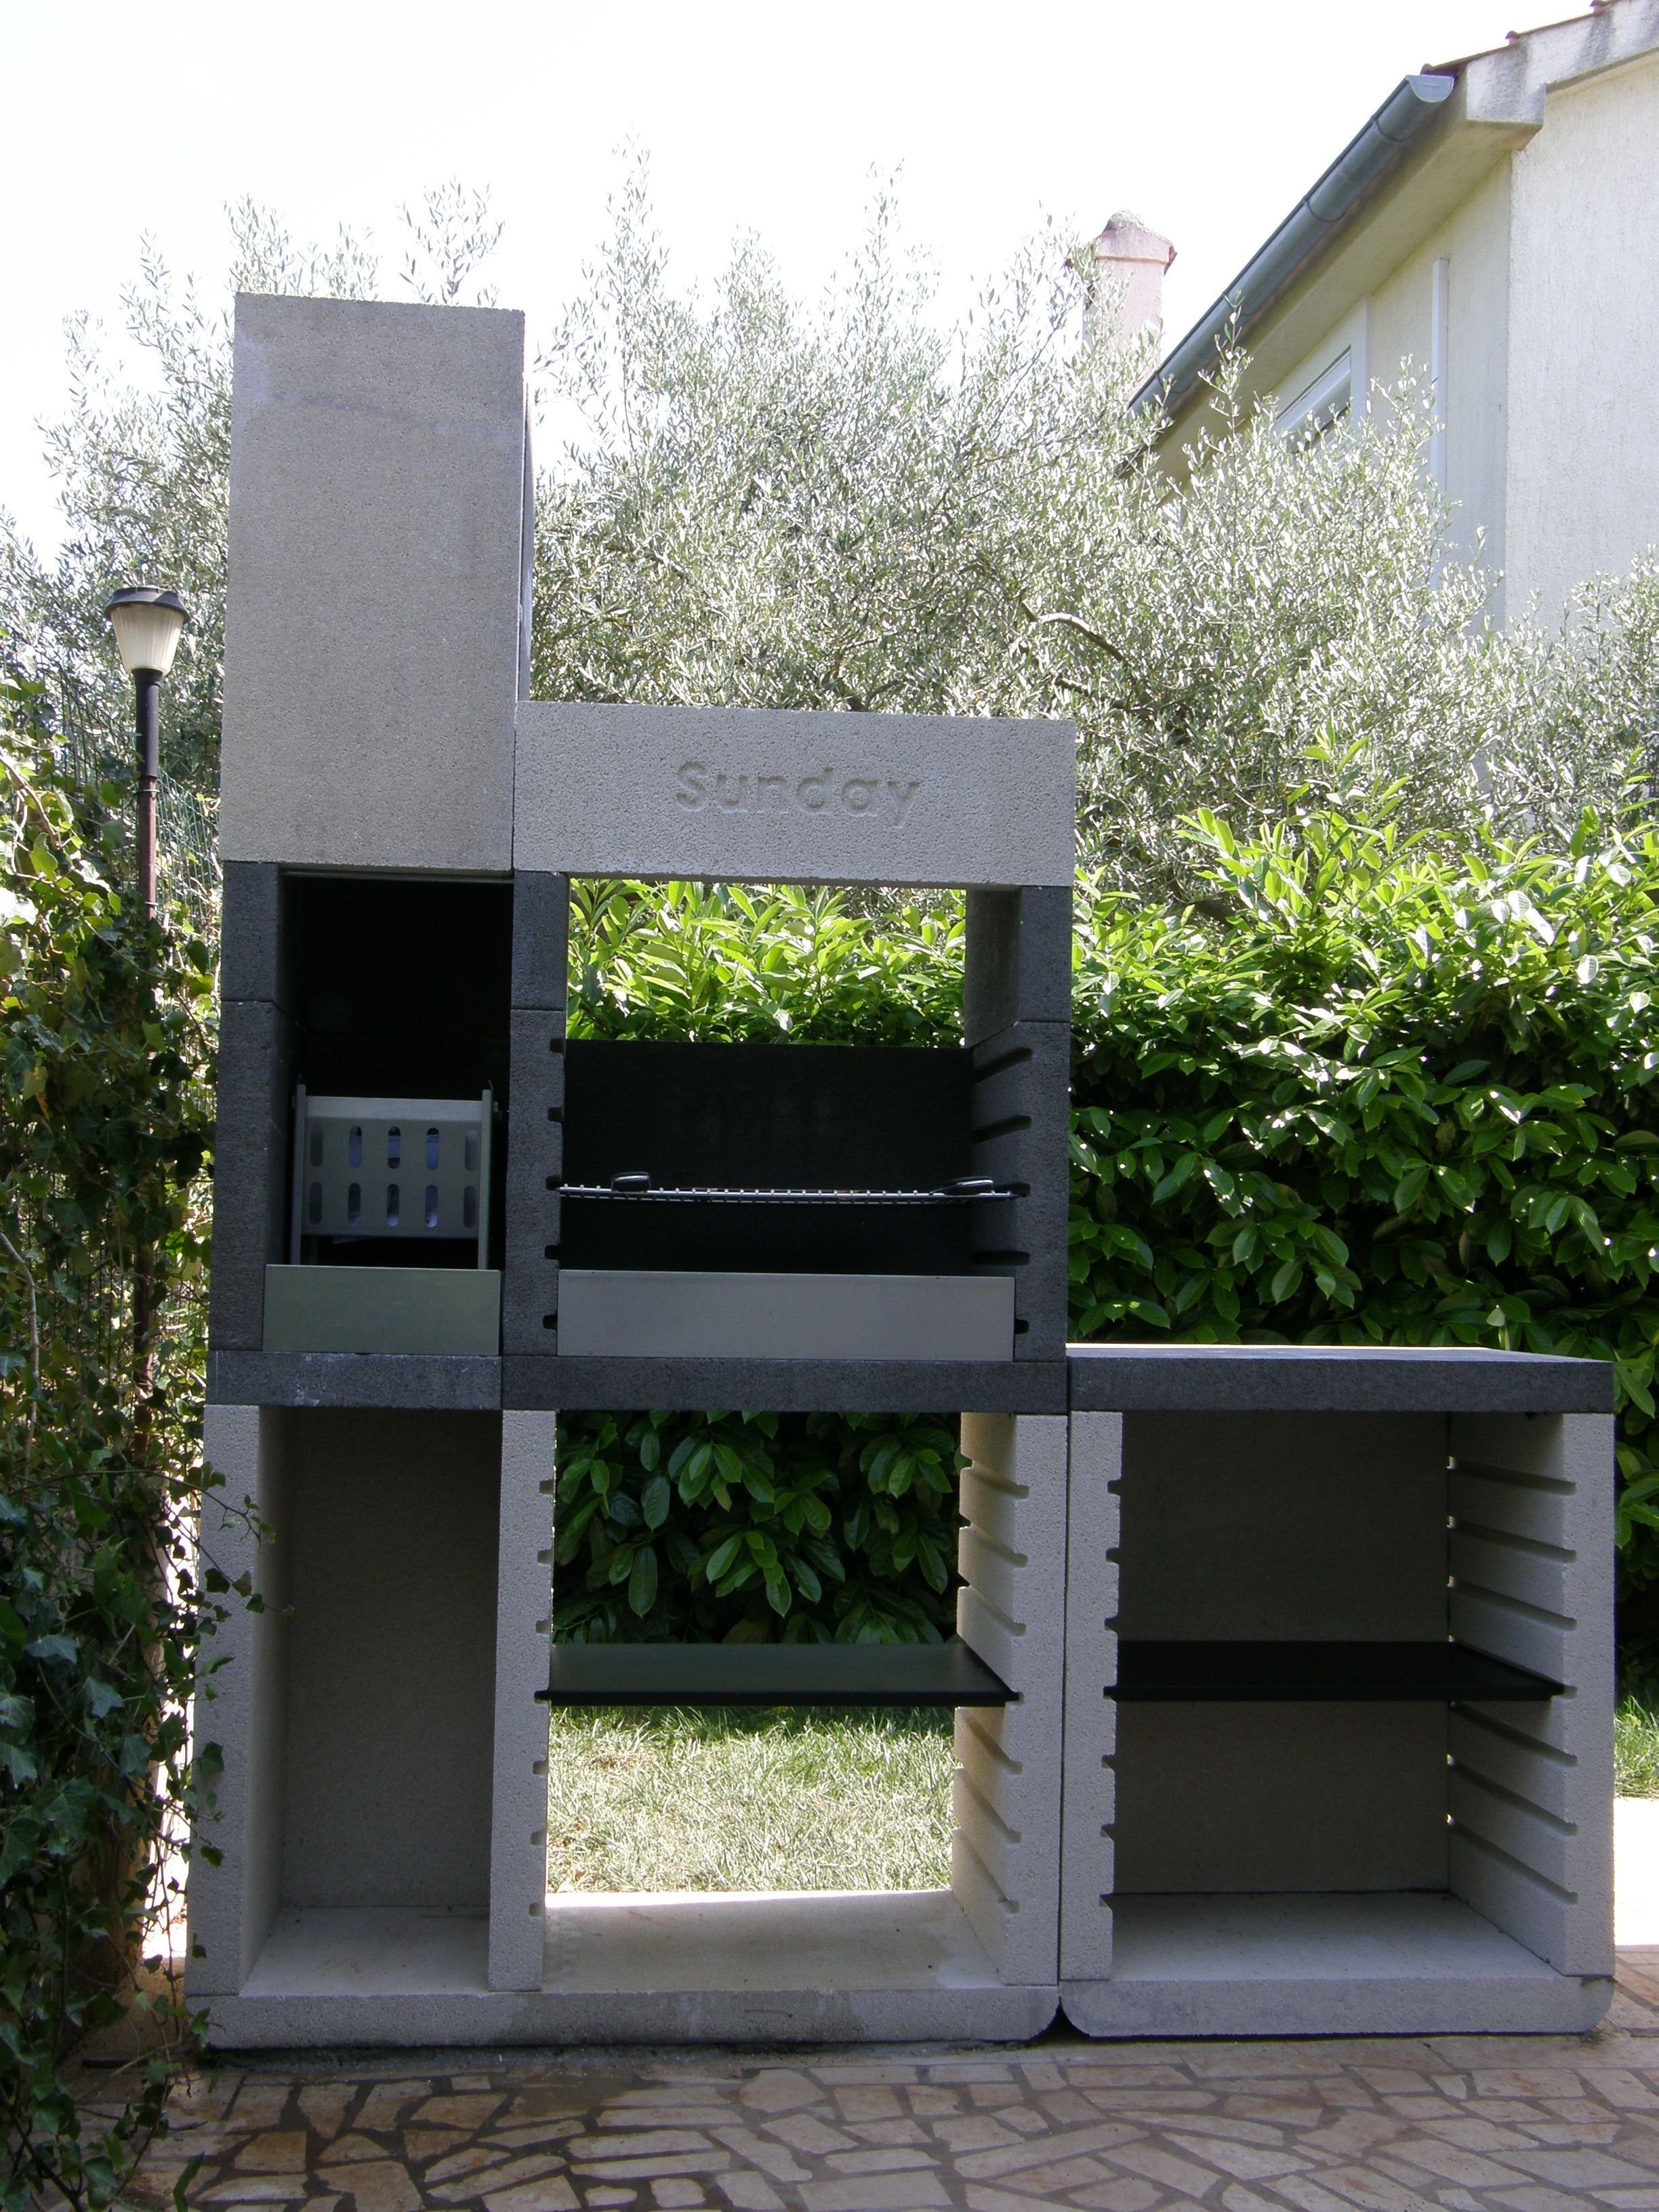 Barbecue Sunday One Tower Outdoor Fireplace